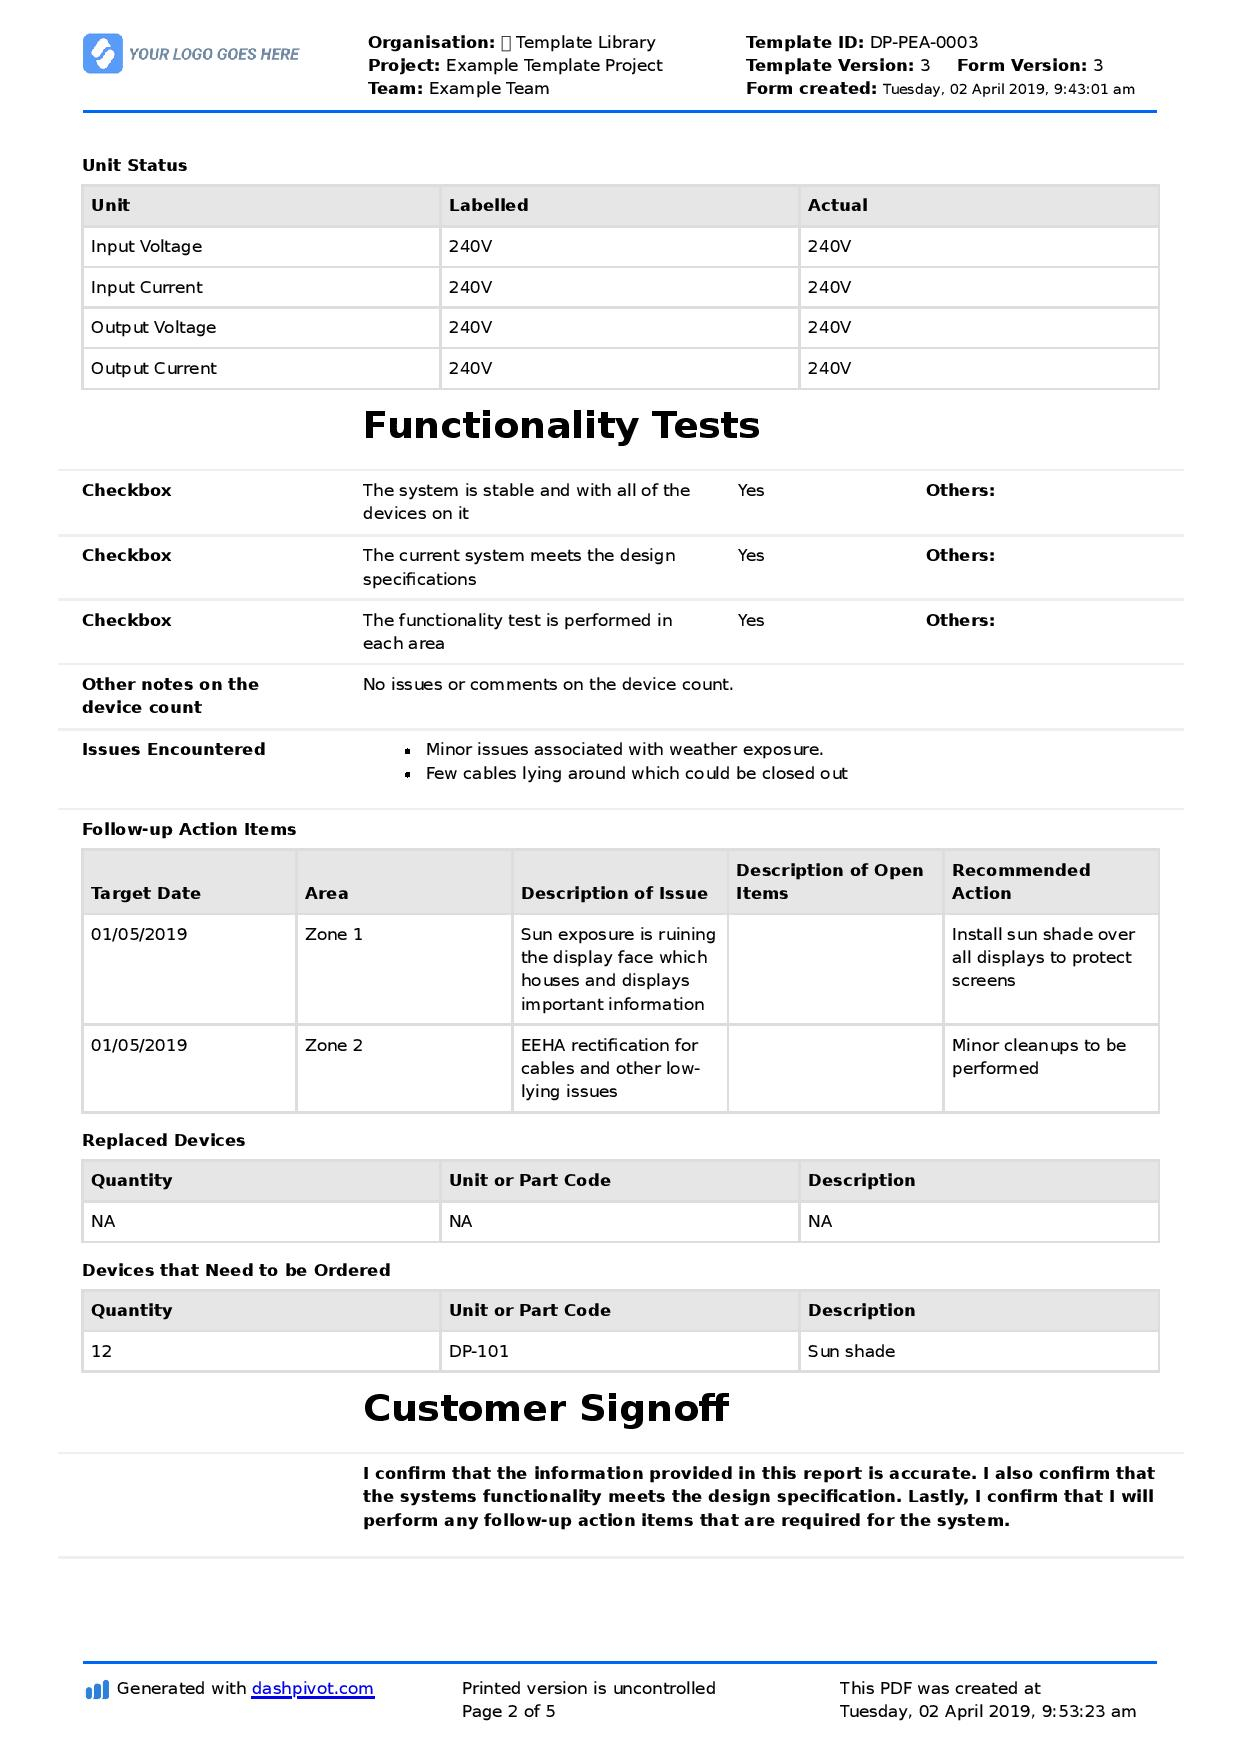 Field Service Report Template (Better Format Than Word In Field Report Template